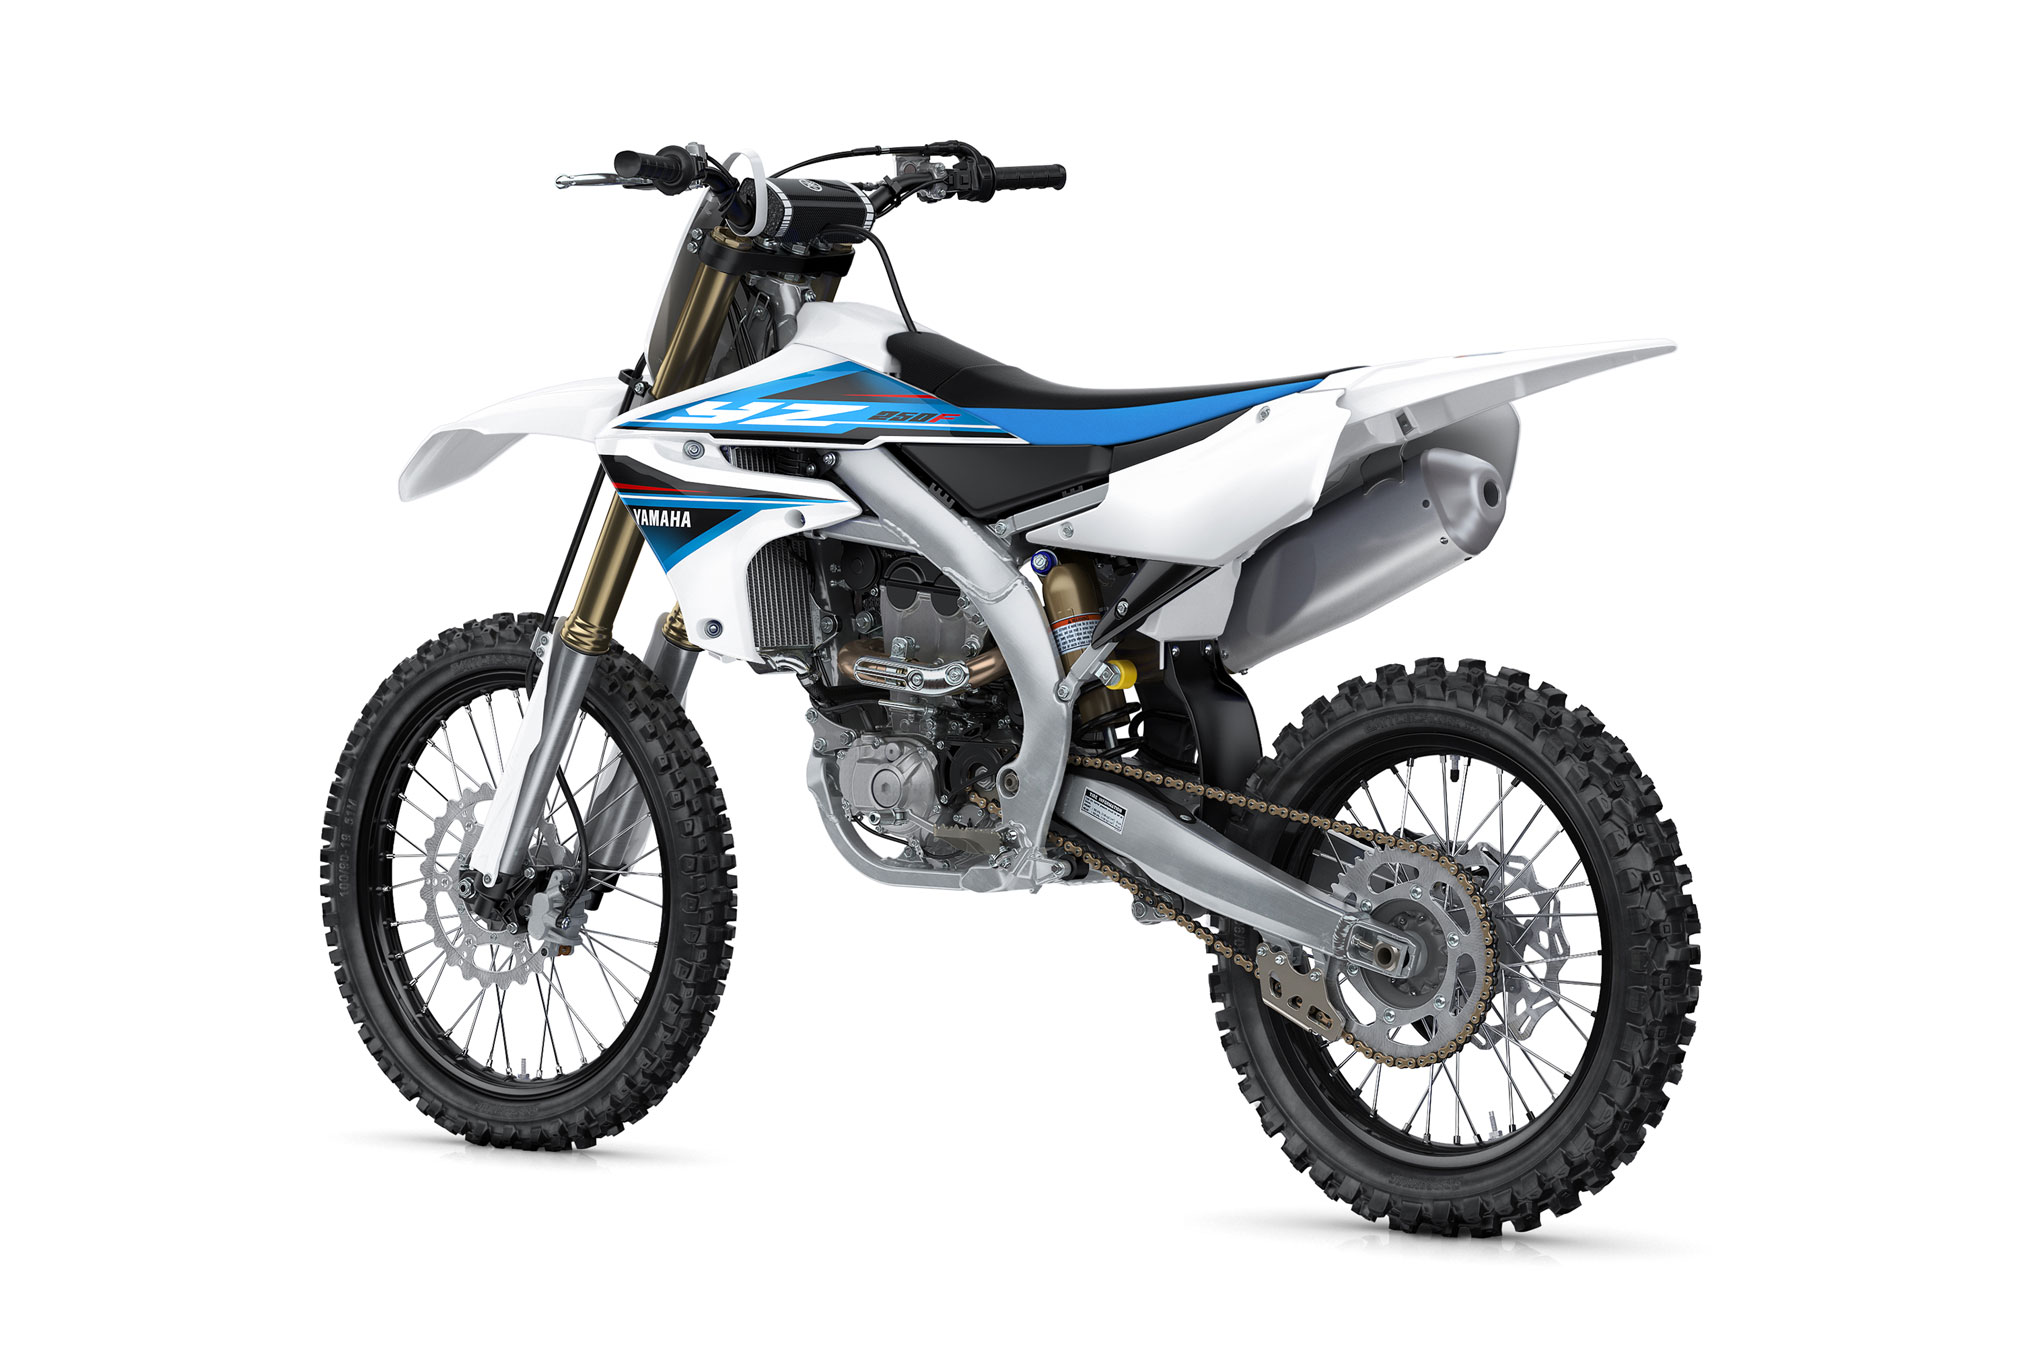 2019 Yamaha YZ250F Guide • Total Motorcycle